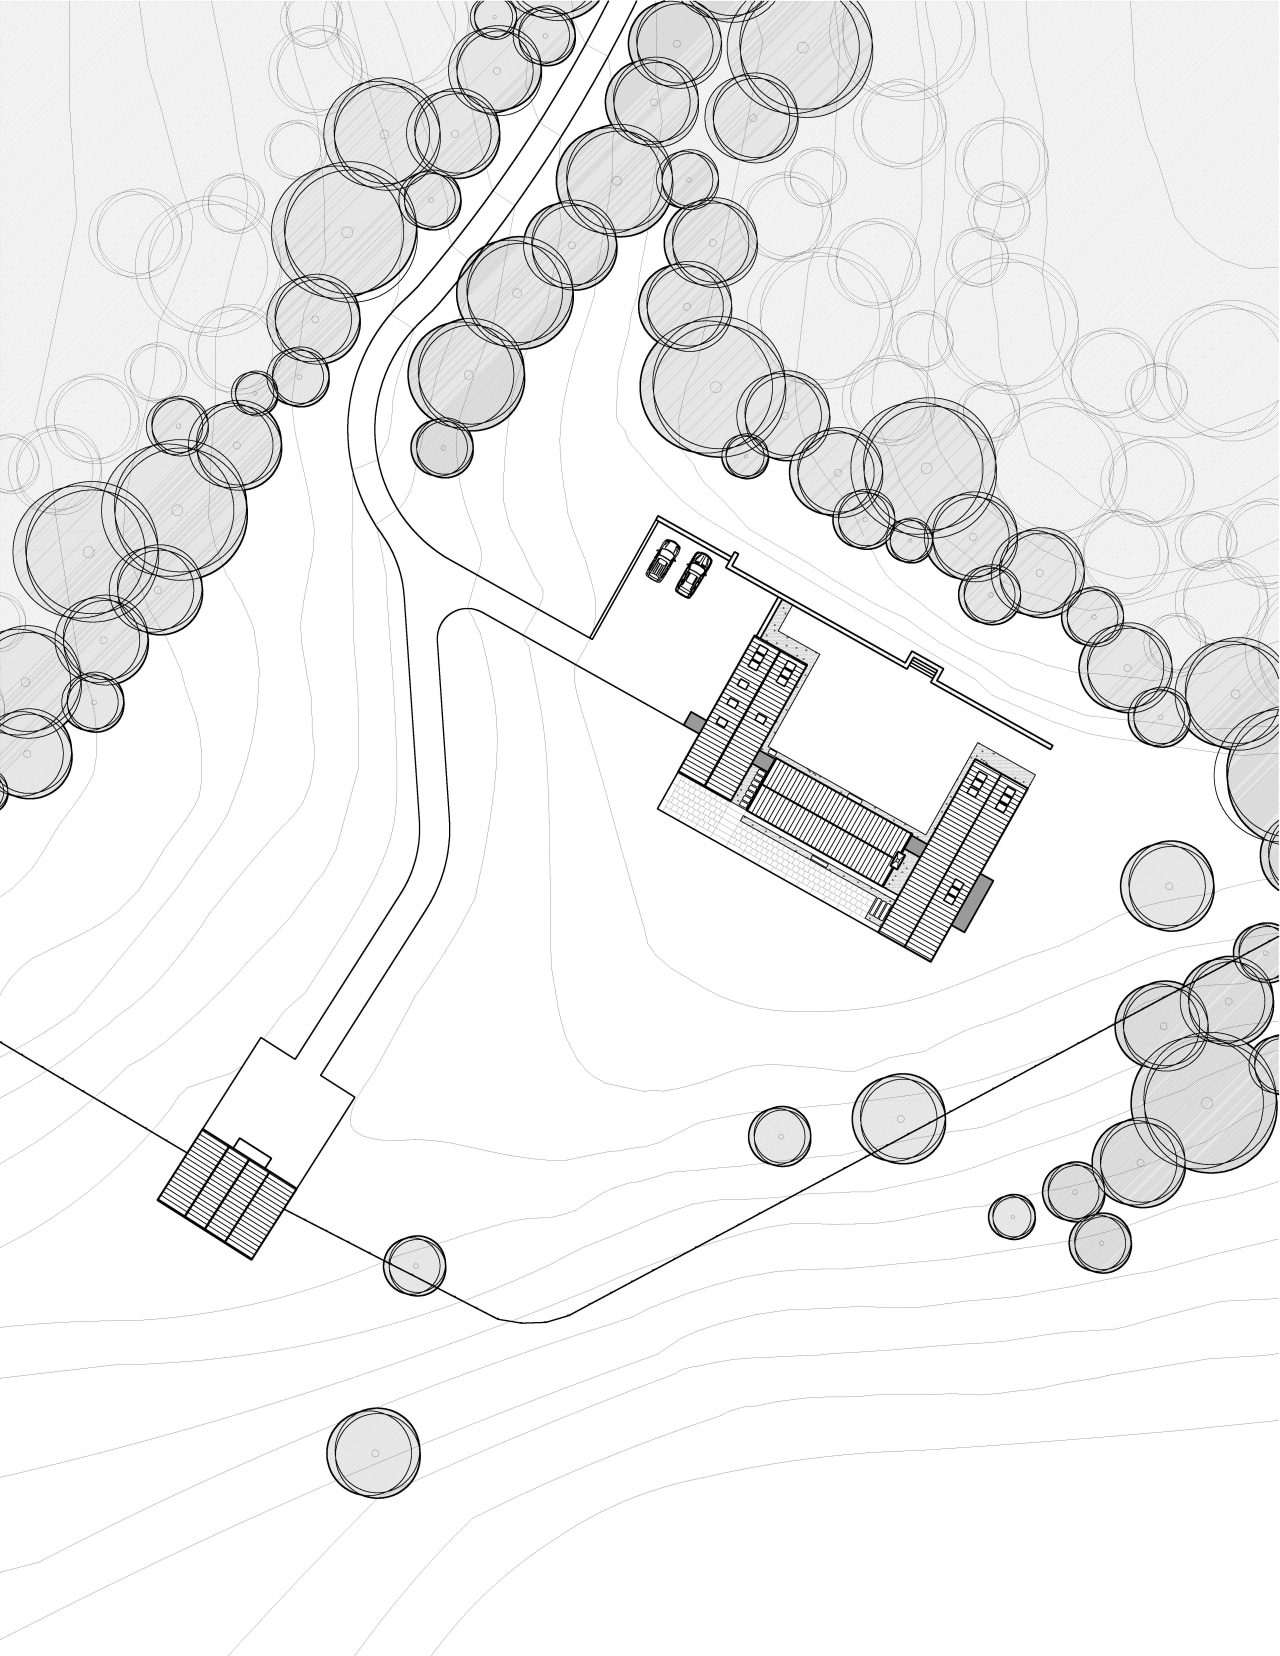 Modern country home plan by Robert M Gurney angle, area, black and white, design, diagram, drawing, font, line, line art, product, product design, structure, text, white, white